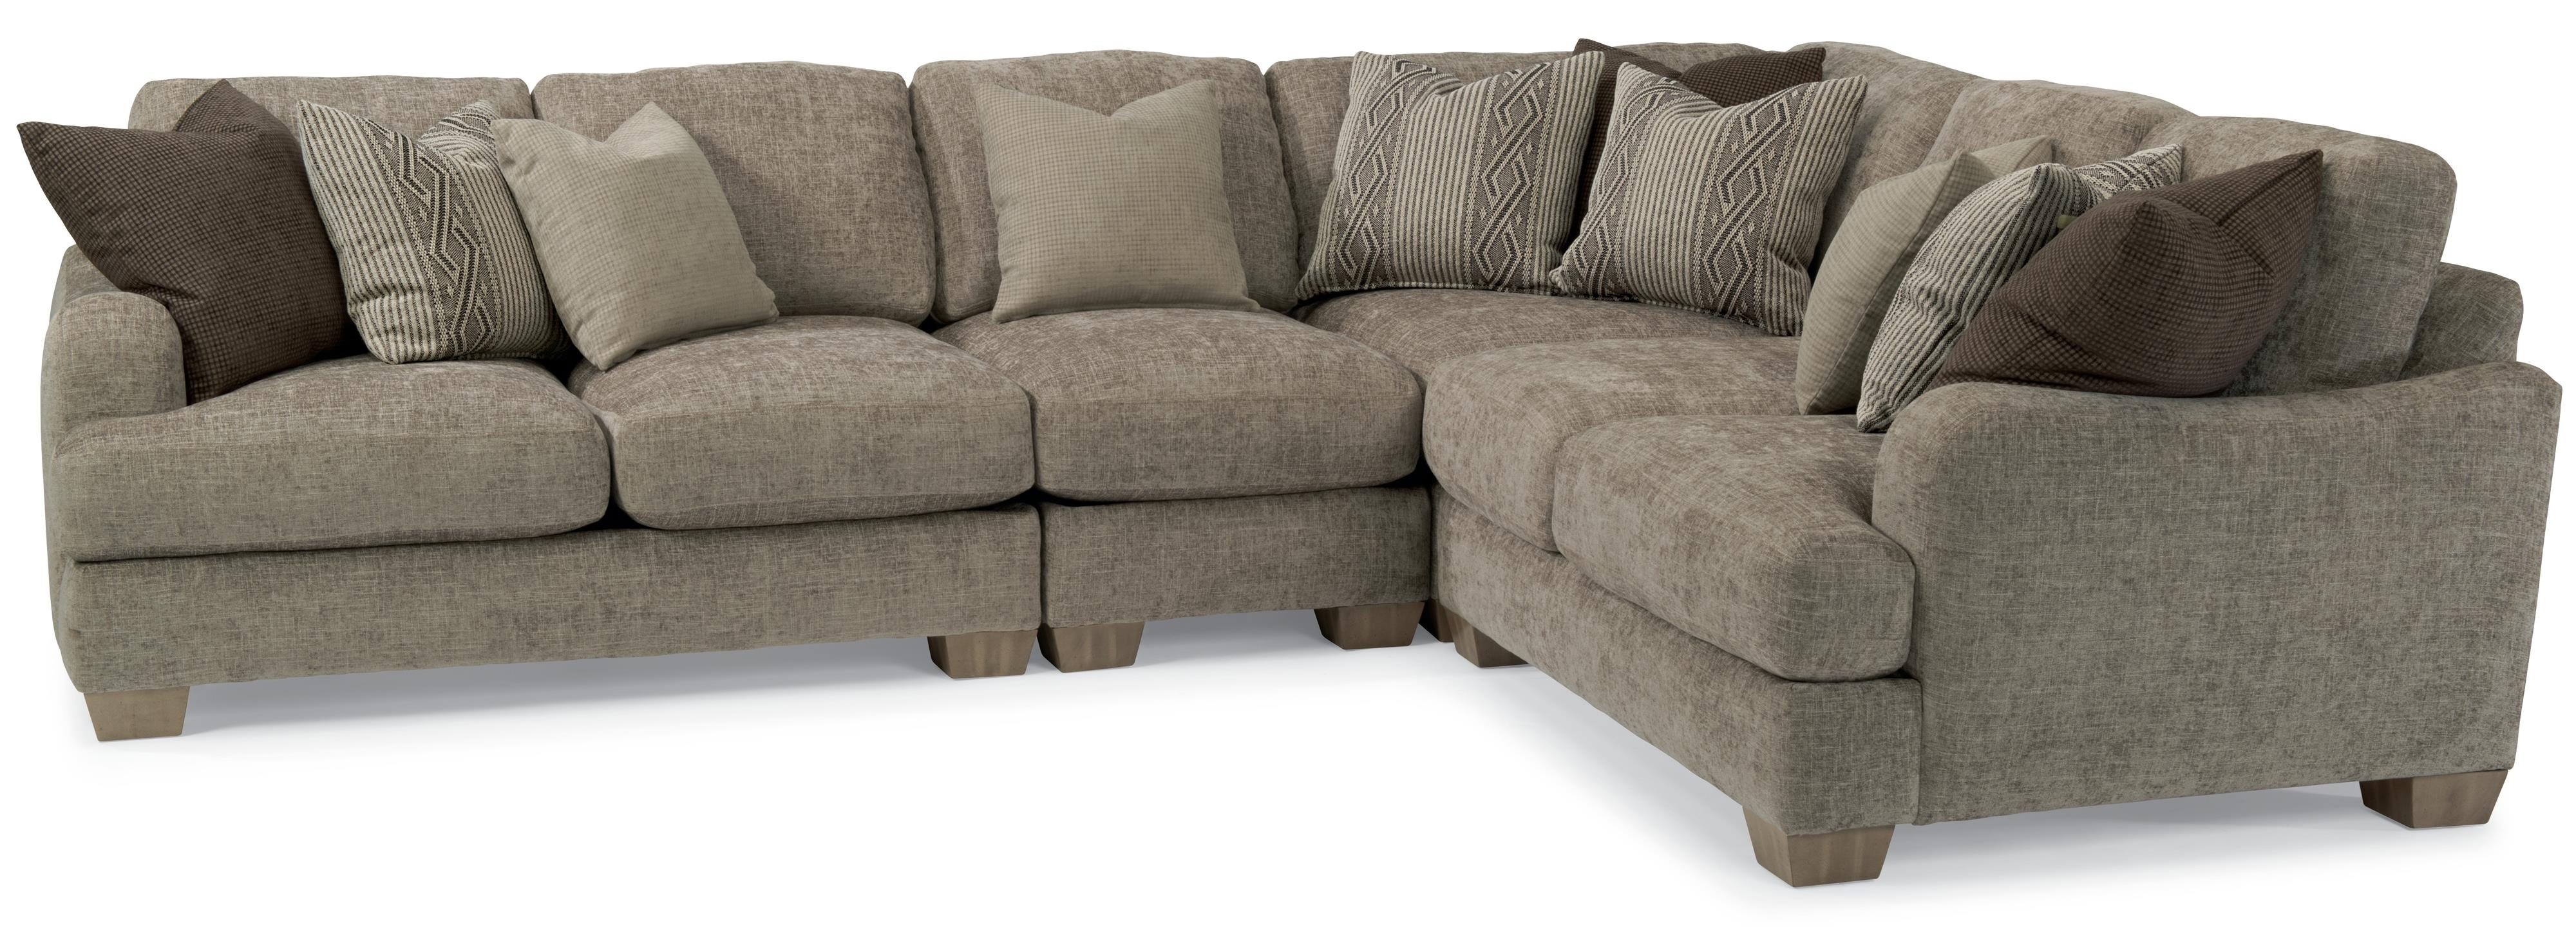 Best And Newest Johnson City Tn Sectional Sofas Within Vanessa Sectional Sofa With Loose Pillow Backflexsteel (View 4 of 15)